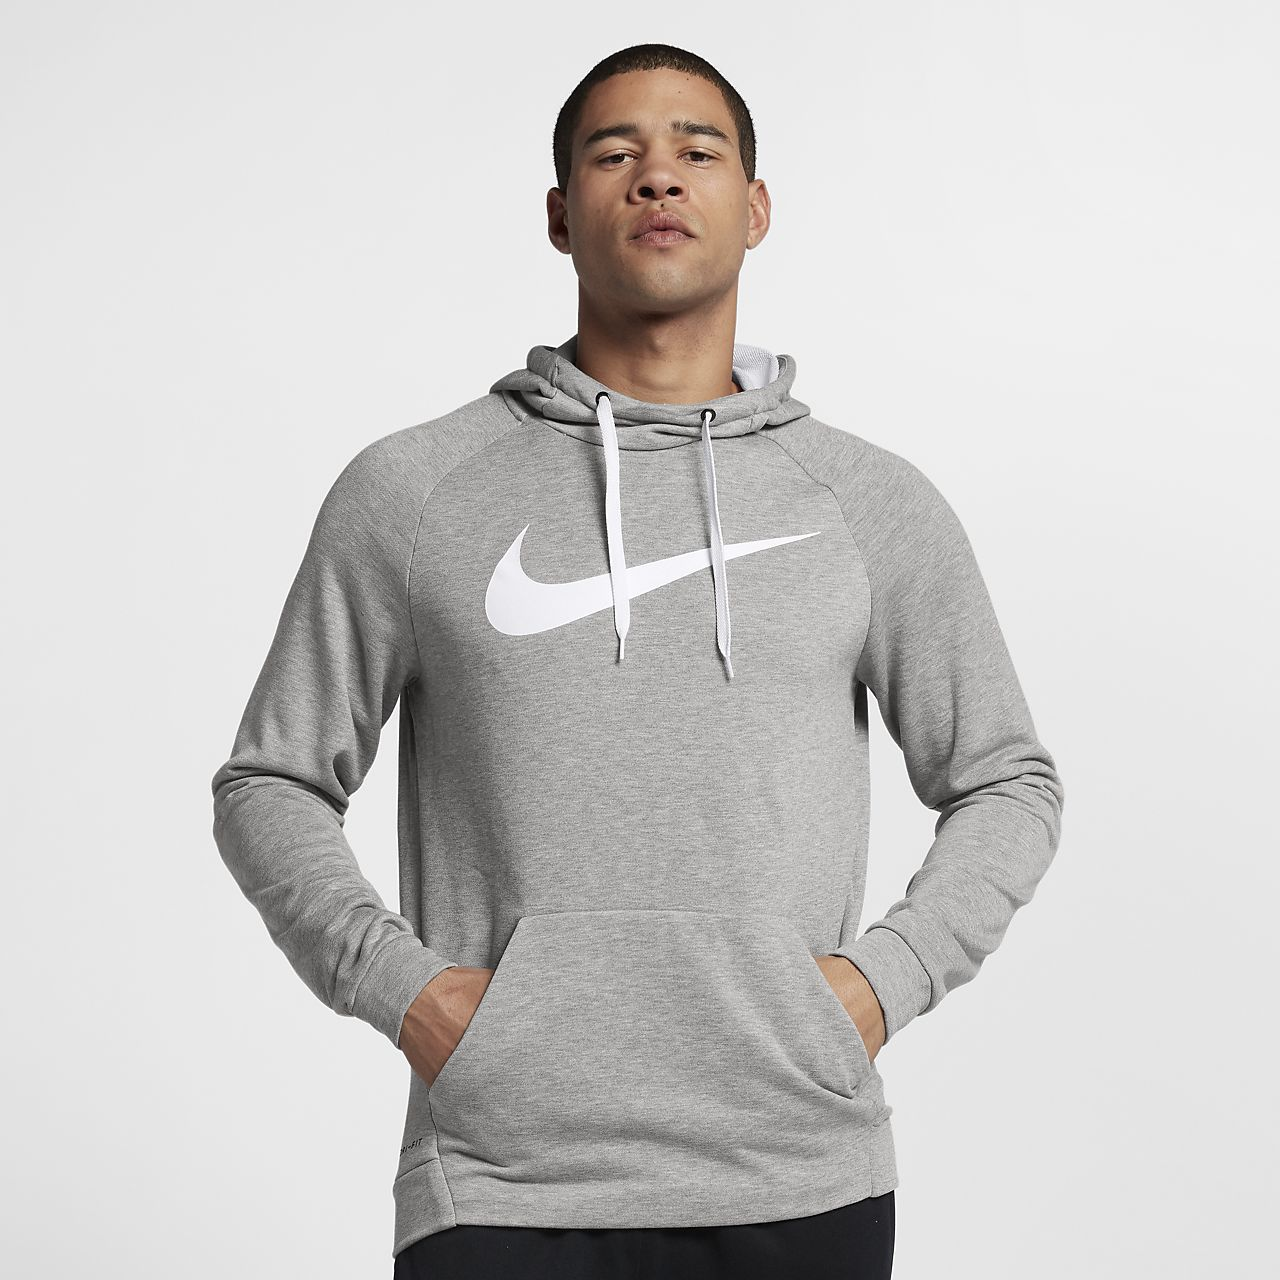 718c1b34 Nike Dri-FIT Men's Training Hoodie. Nike.com